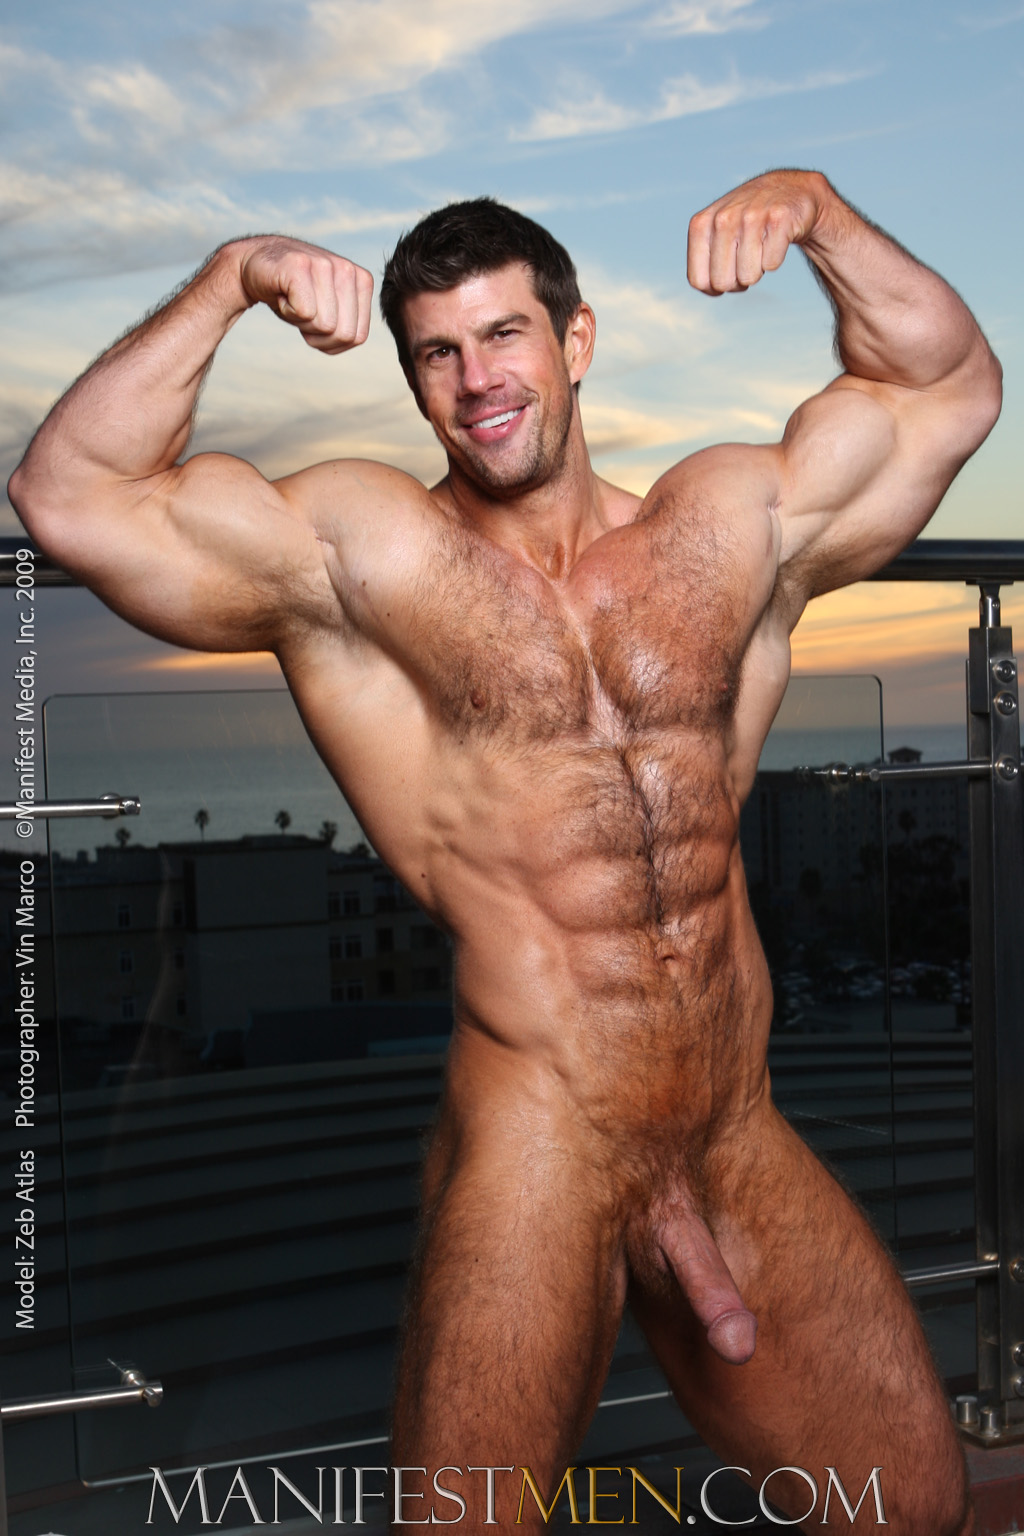 Zeb atlas naked can not